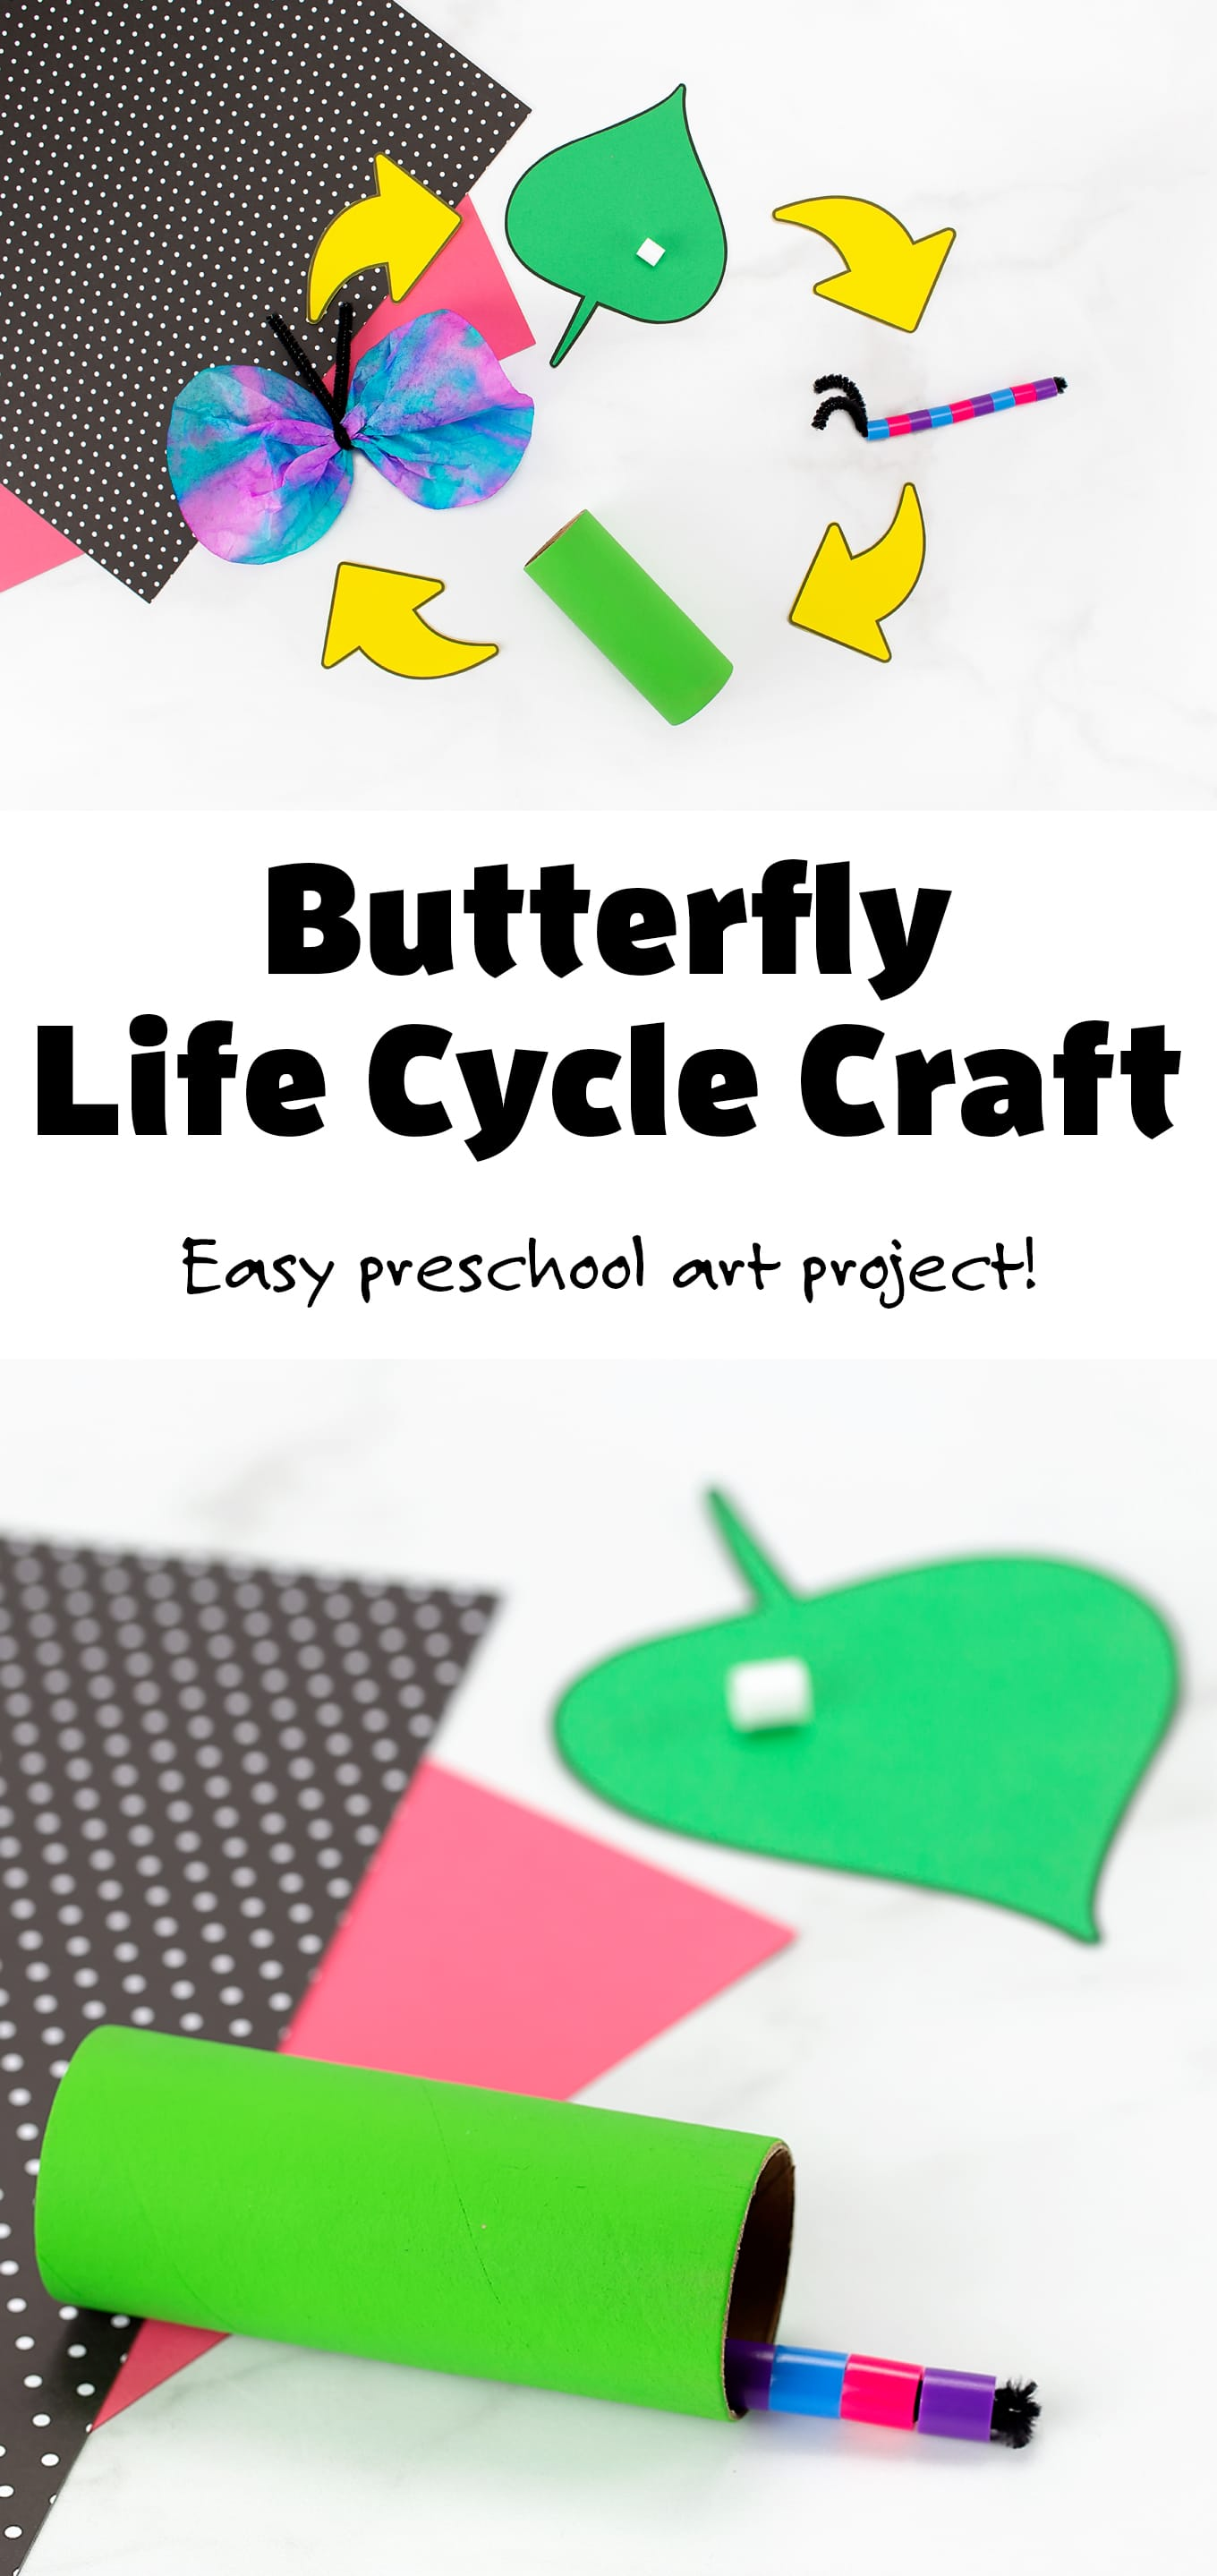 Through this interactive Butterfly Life Cycle Craft, kids will create and demonstrate the 4 simple stages of a butterfly's life cycle: egg, caterpillar, pupa, and adult. With two free printable templates, it's the perfect educational art project for preschool or kindergarten. #butterflylifecycle #butterflylifecyclecraft #butterflycraft #preschool #kindergarten #butterflyscience via @firefliesandmudpies